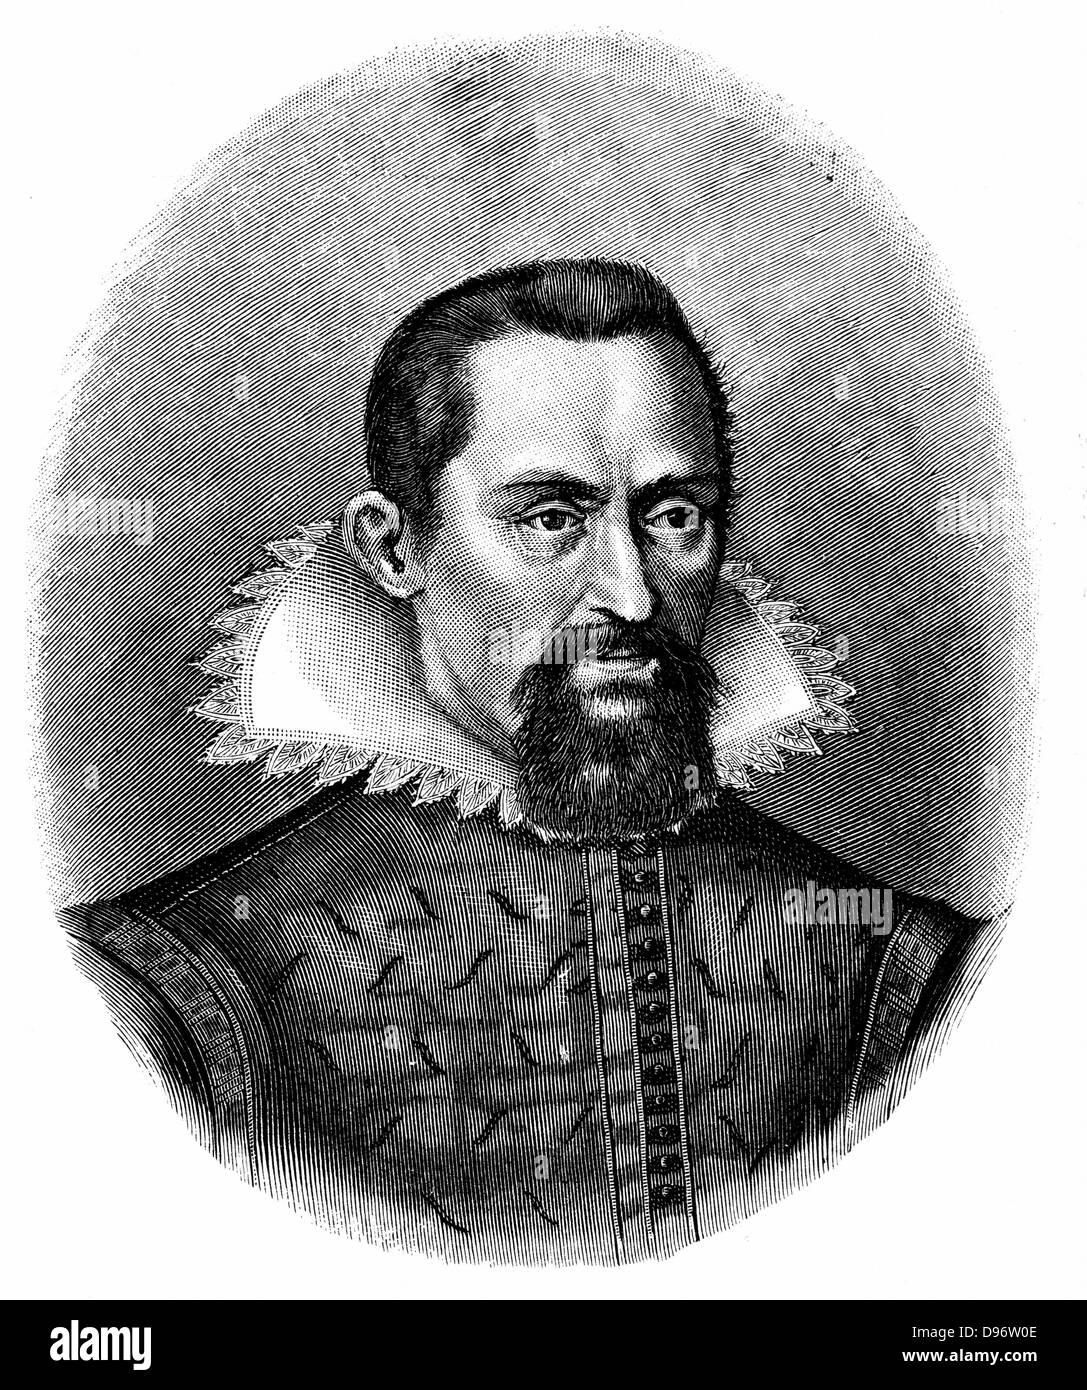 Johannes Kepler (1571-1630) German astronomer. Engraving c1903 - Stock Image